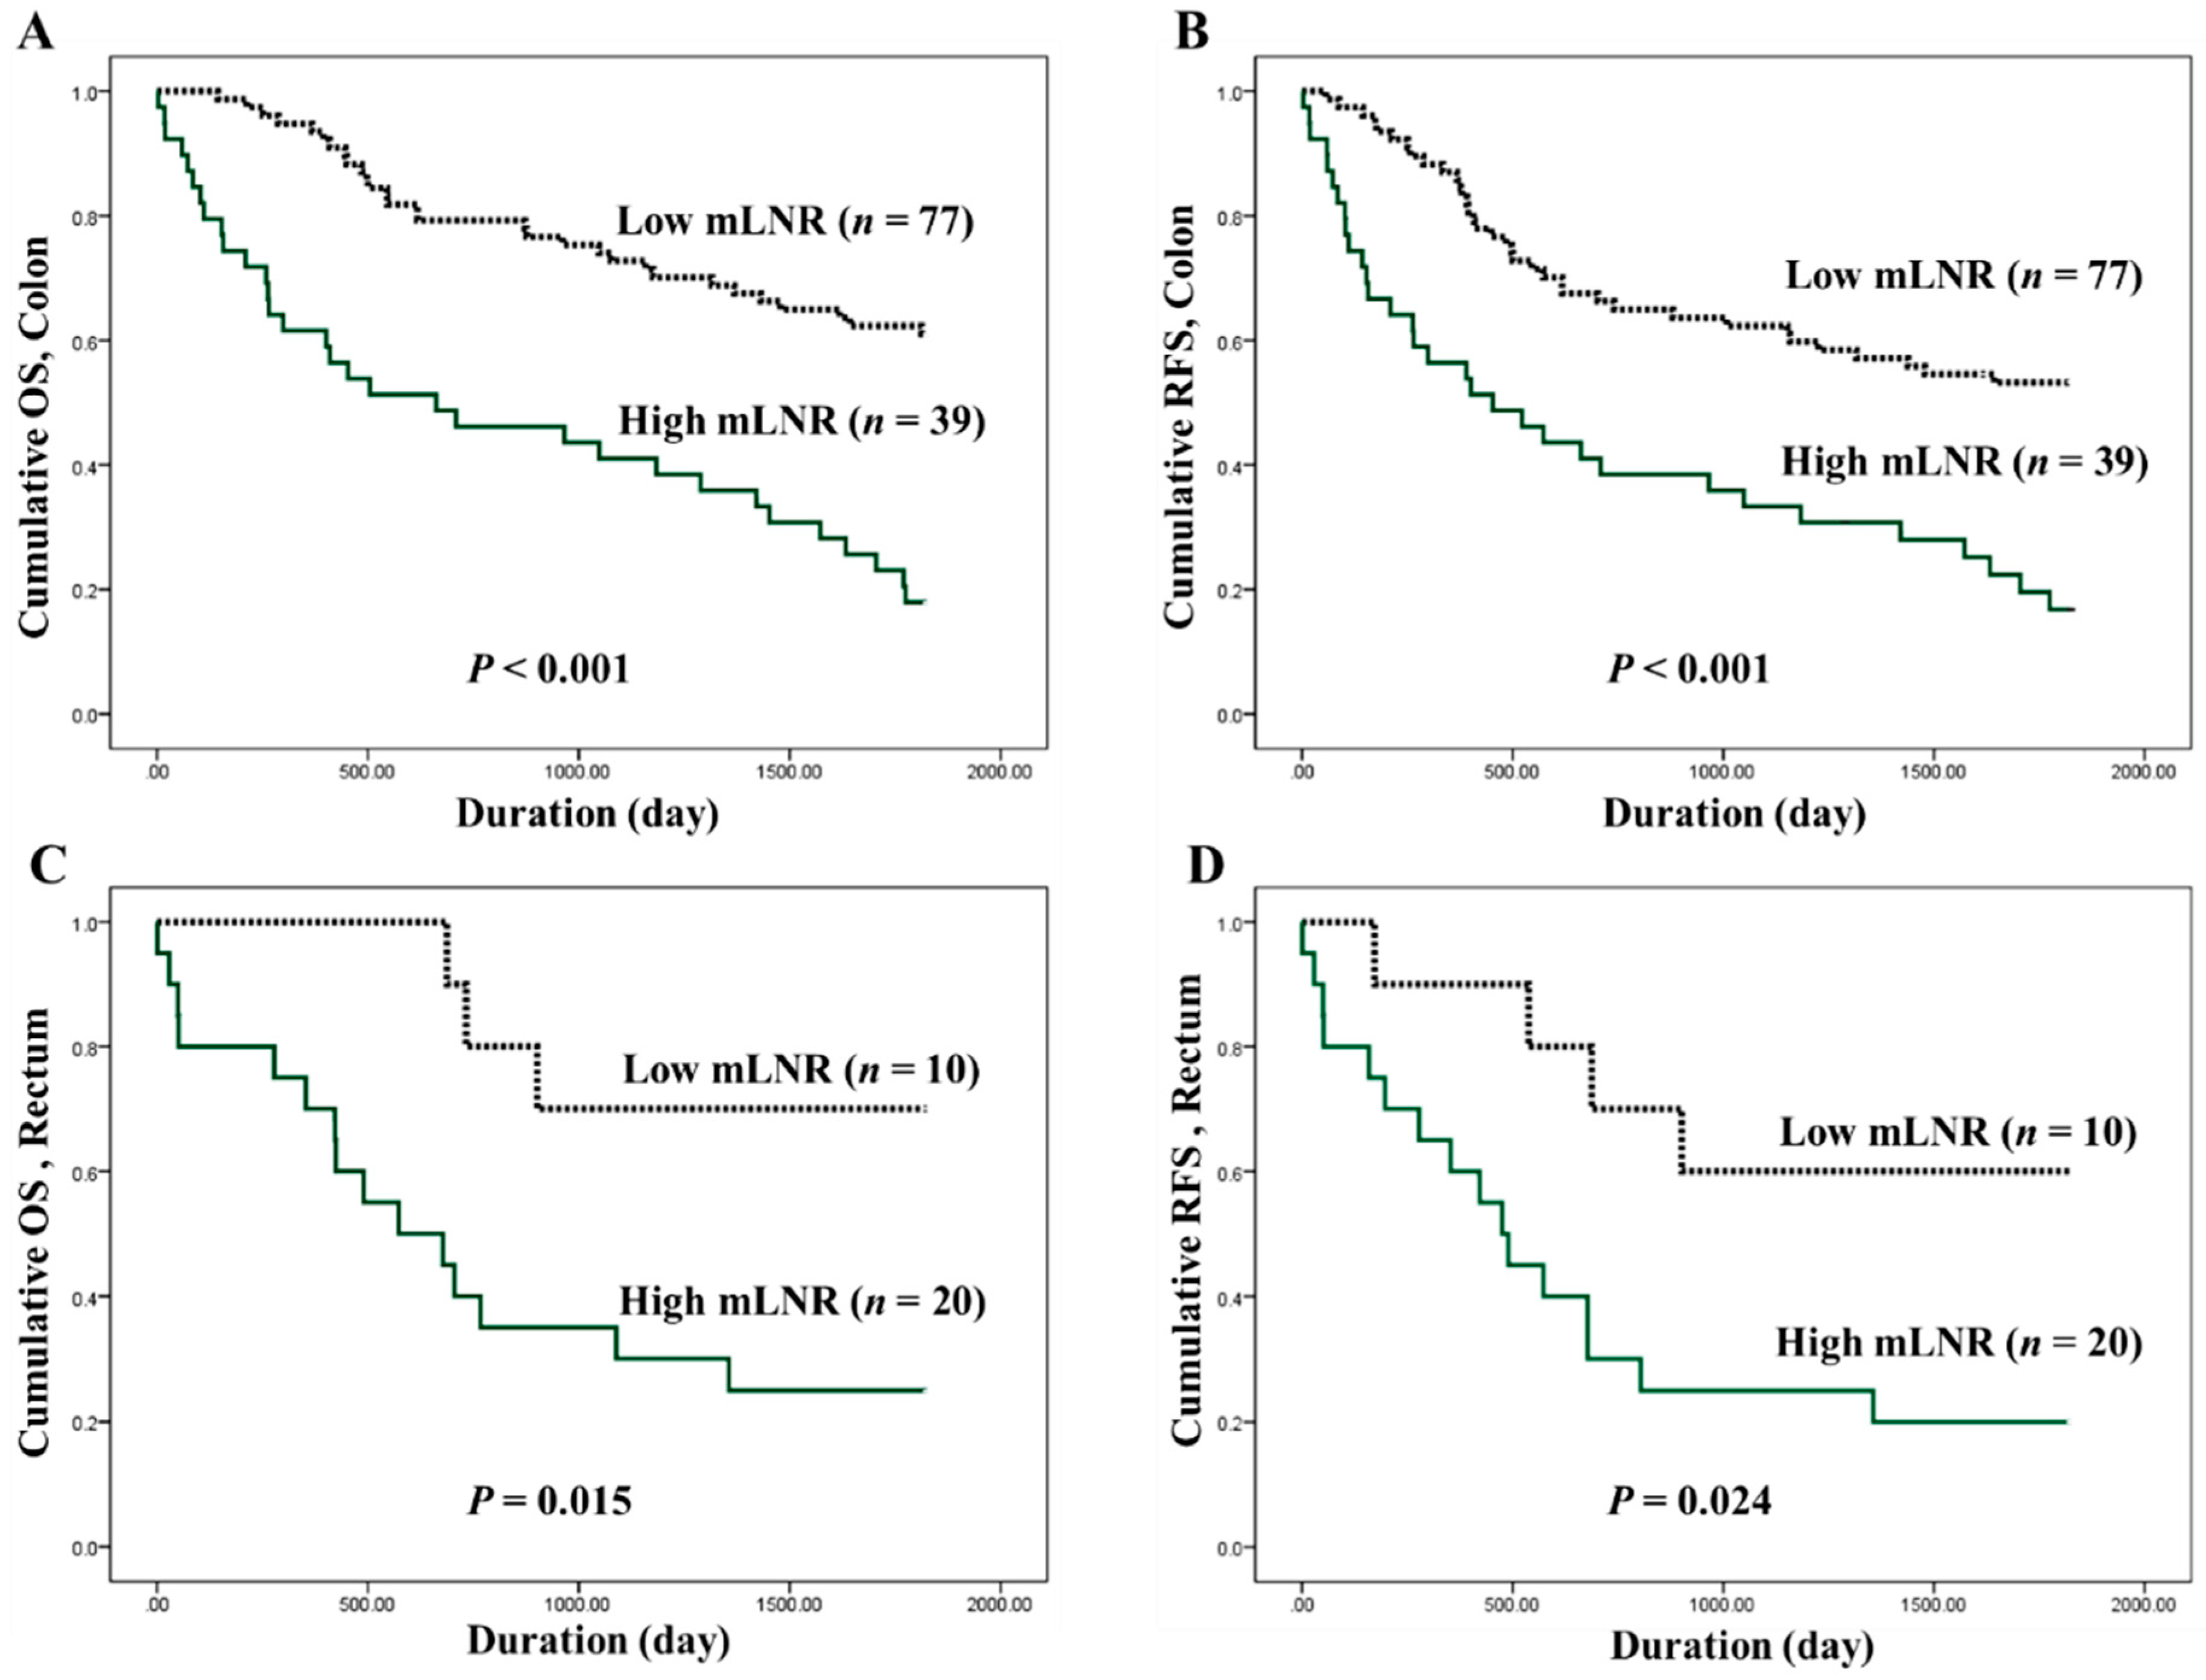 Jcm Free Full Text Prognostic Implication Of Metastatic Lymph Node Ratio In Colorectal Cancers Comparison Depending On Tumor Location Html